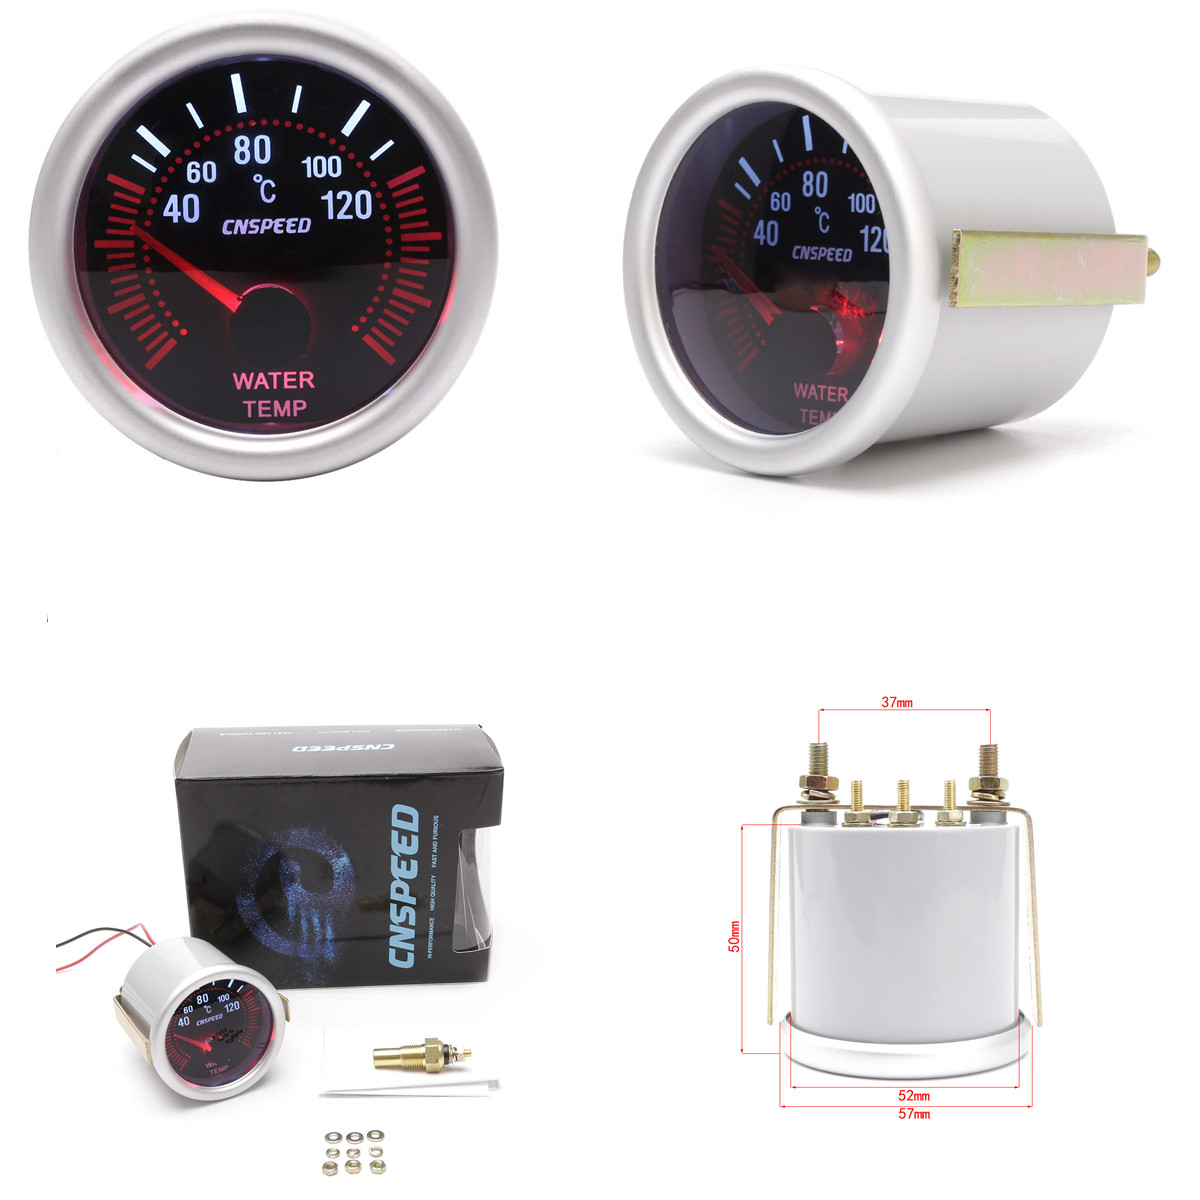 SING F LTD 2 inches White LED Car Water Temperature Gauge Meter Dials 40-120